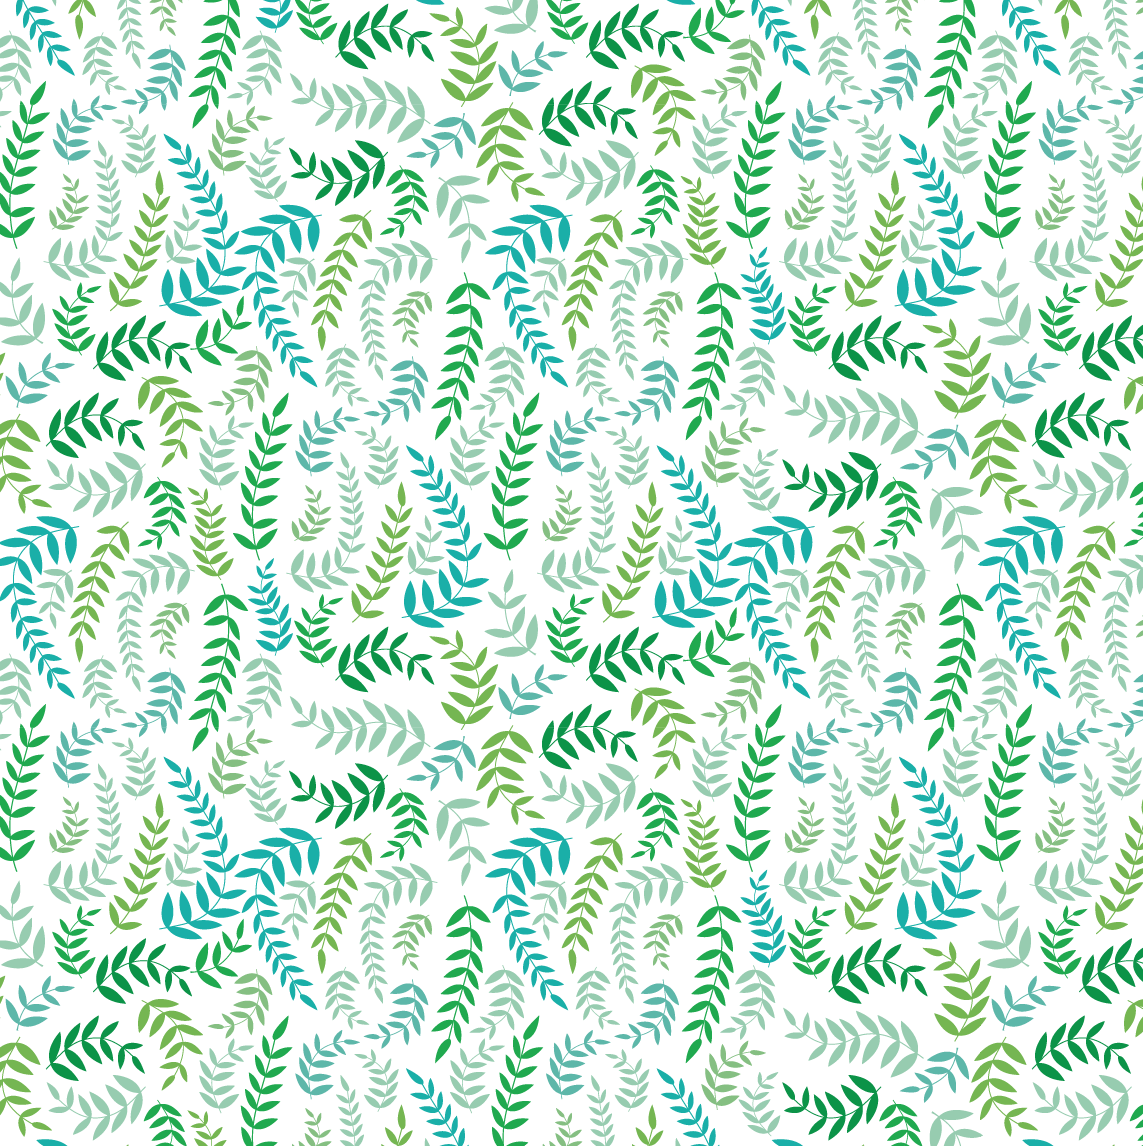 design surface pattern nature fern nonna design illustration